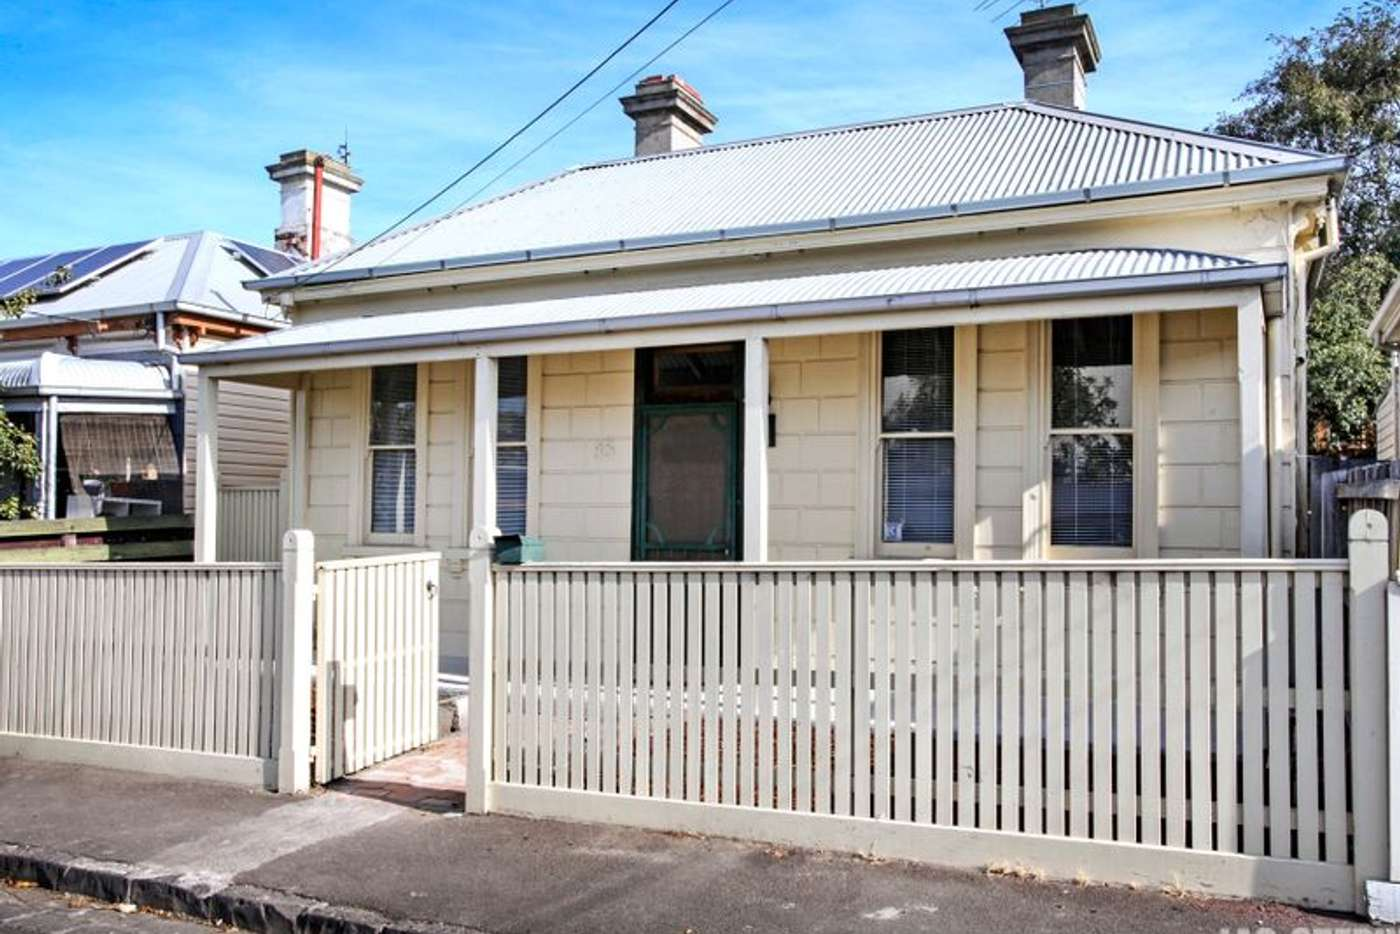 Main view of Homely house listing, 85 Alexander Street, Seddon VIC 3011